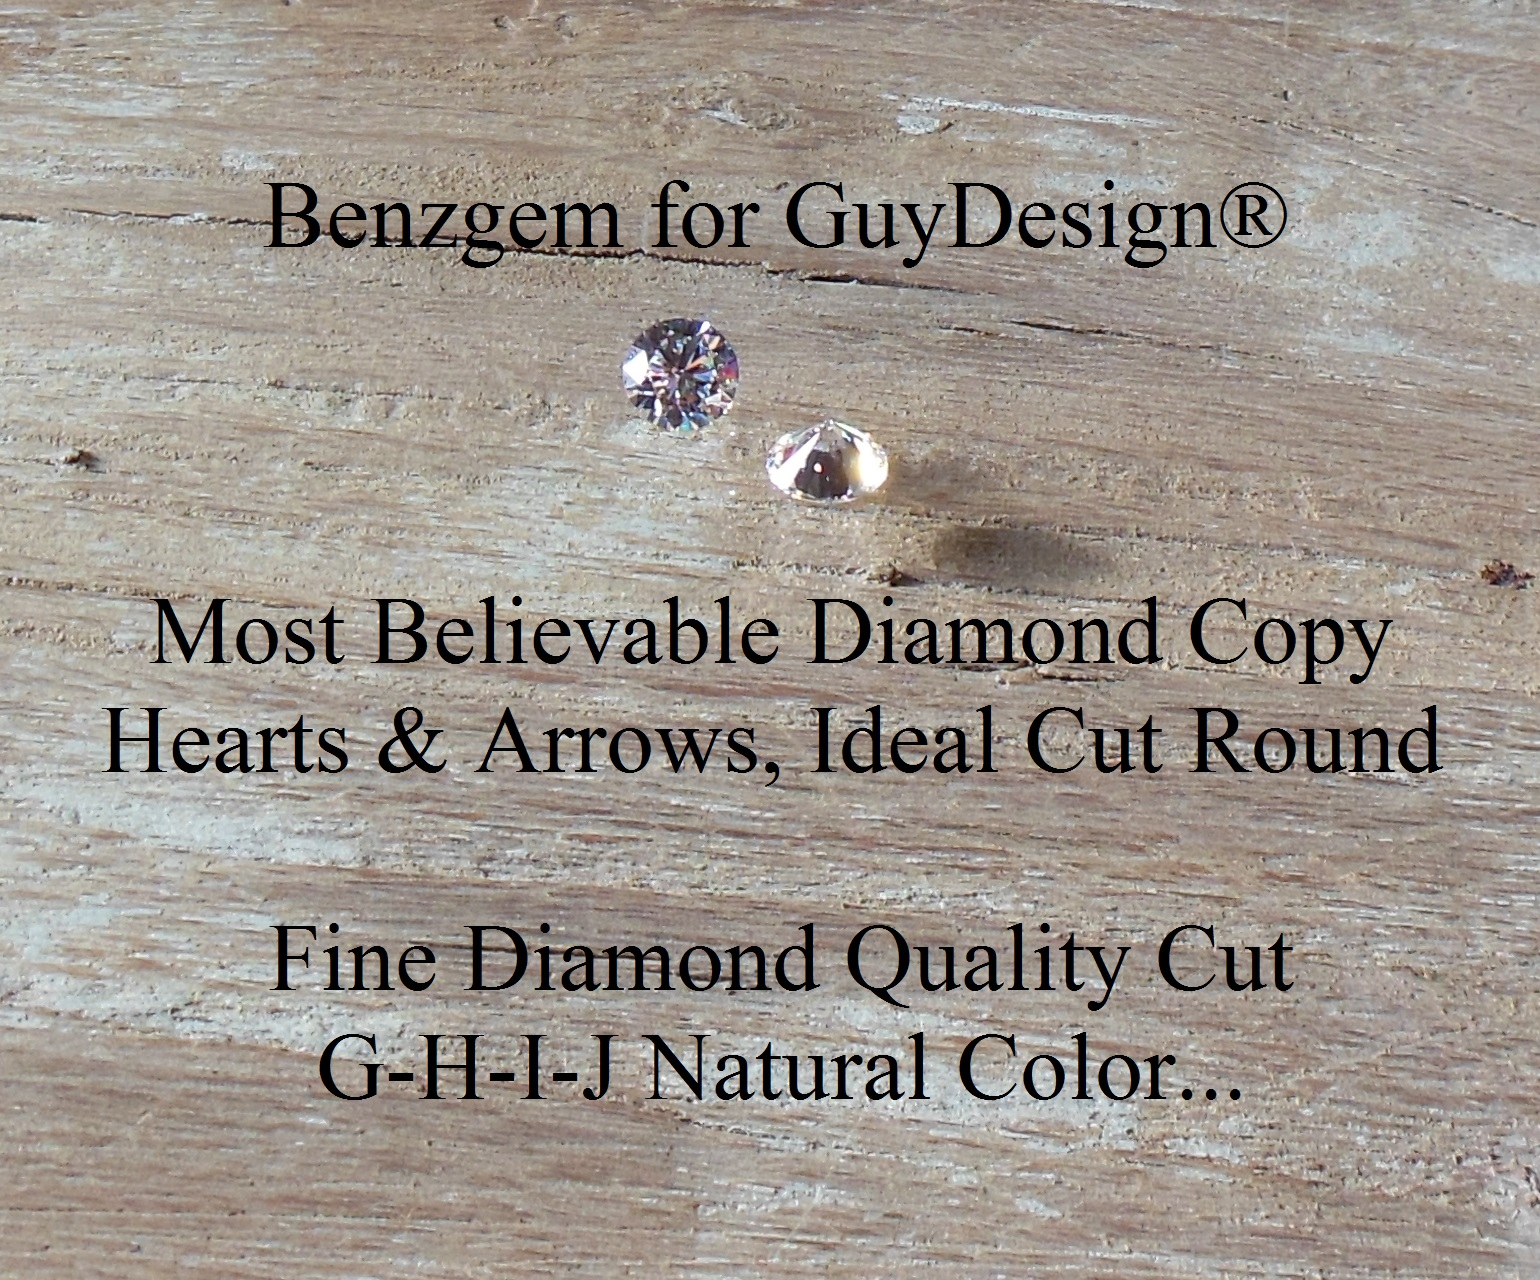 most-believable-diamond-copy-round-brilliant-benzgem-for-guydesign-.jpg